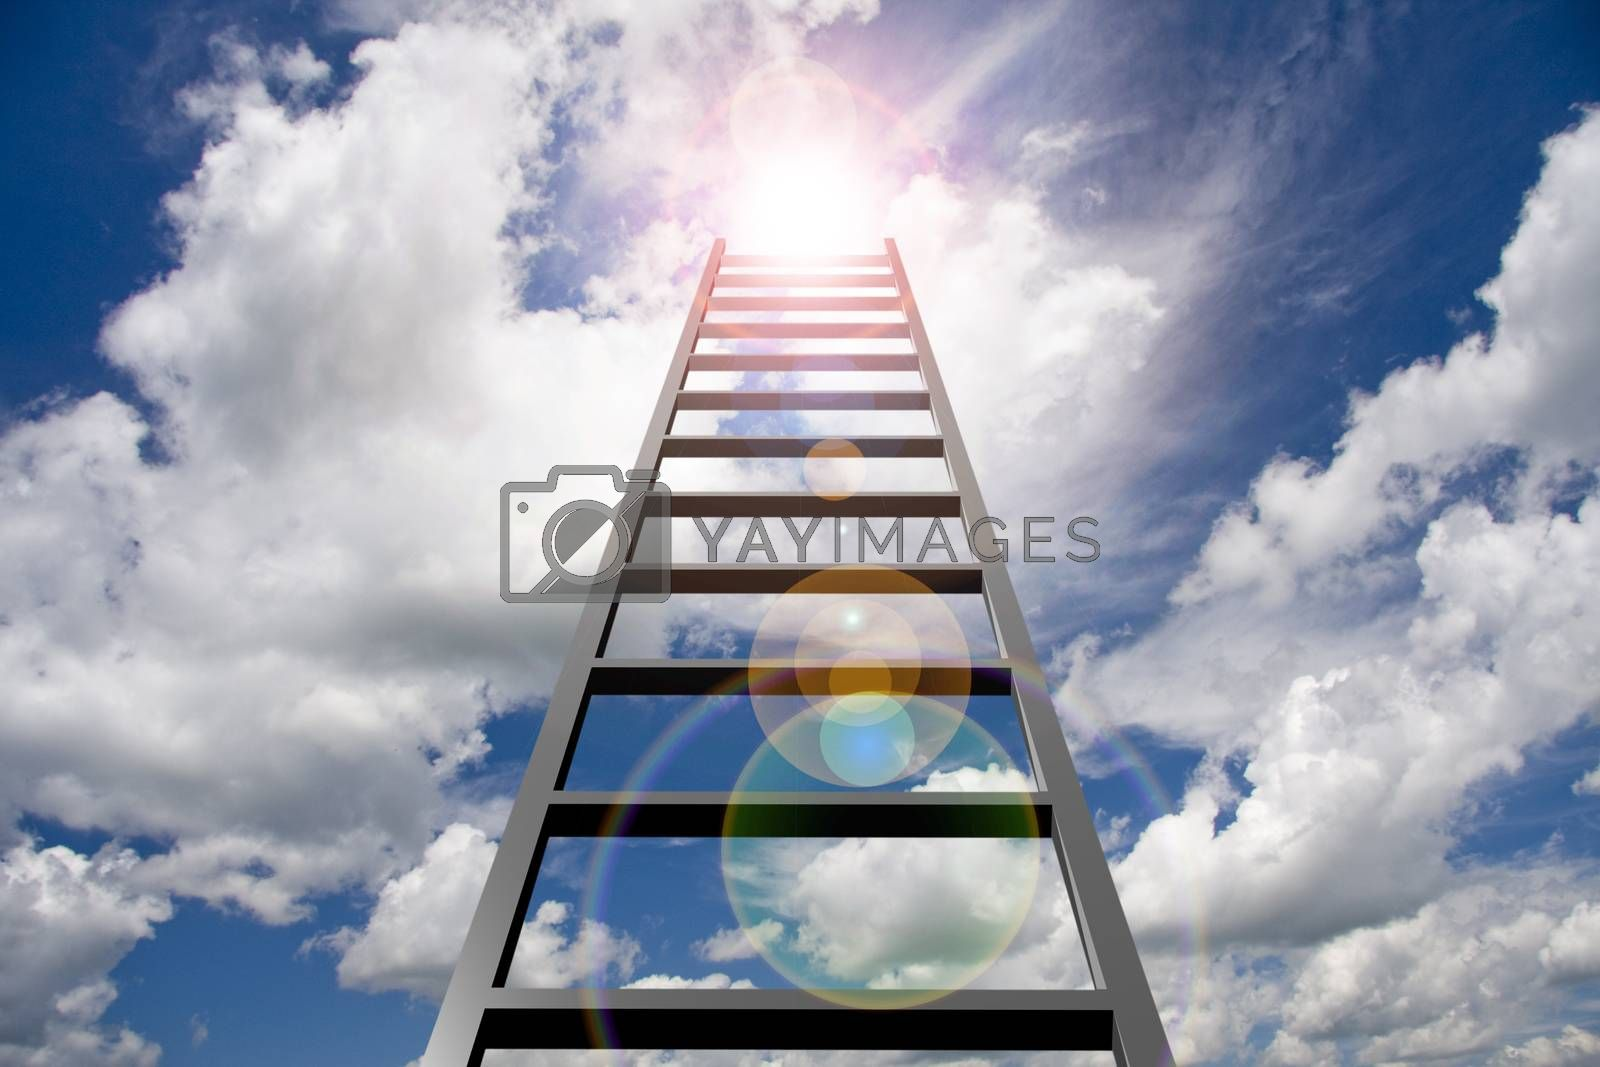 Ladder into sky by applesstock